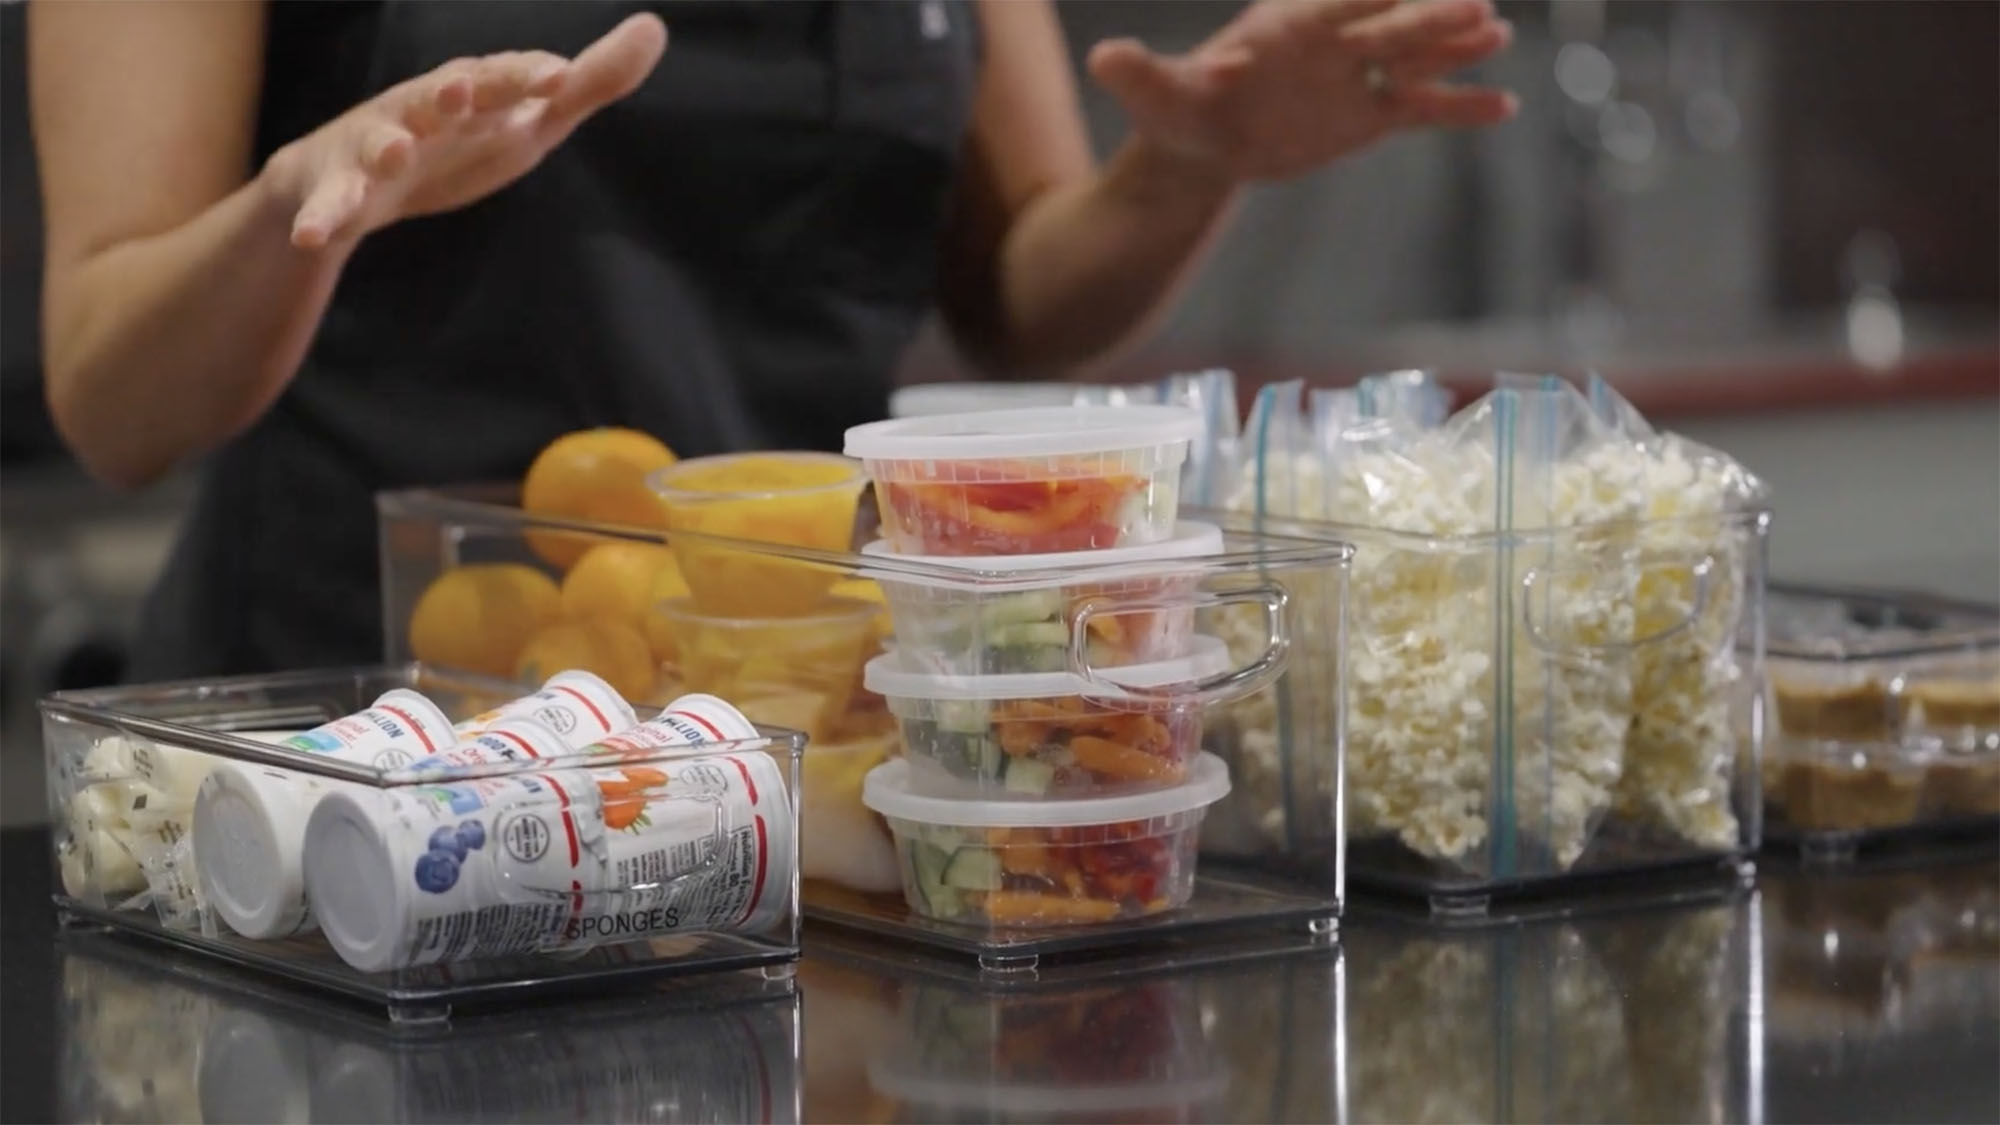 Plastic storage bins are displayed side by side on a kitchen countertop, each of which is filled with various snack items like cheesesticks, yogurt, fruit cups, nuts and other items.